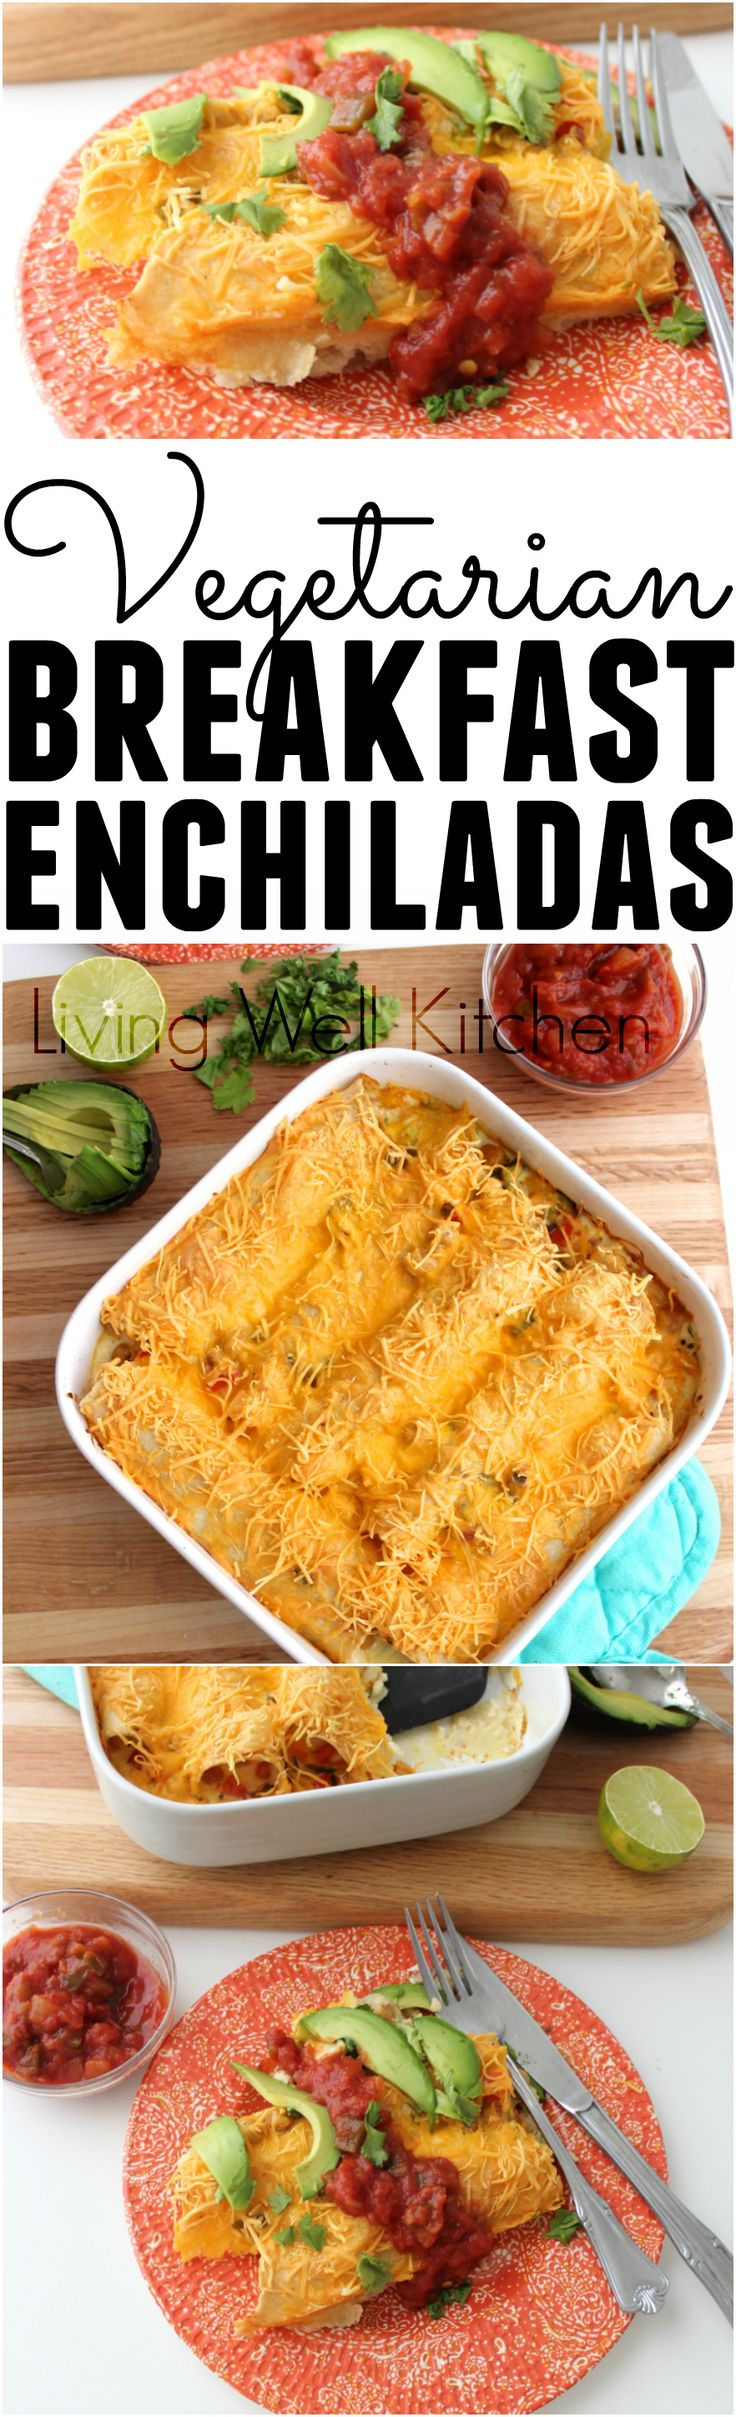 Vegetarian Breakfast Enchiladas make breakfast something to look forward to. Plus they're full of veggies, protein and healthy carbs to keep you full for hours. Vegetarian Breakfast Enchiladas from @memeinge